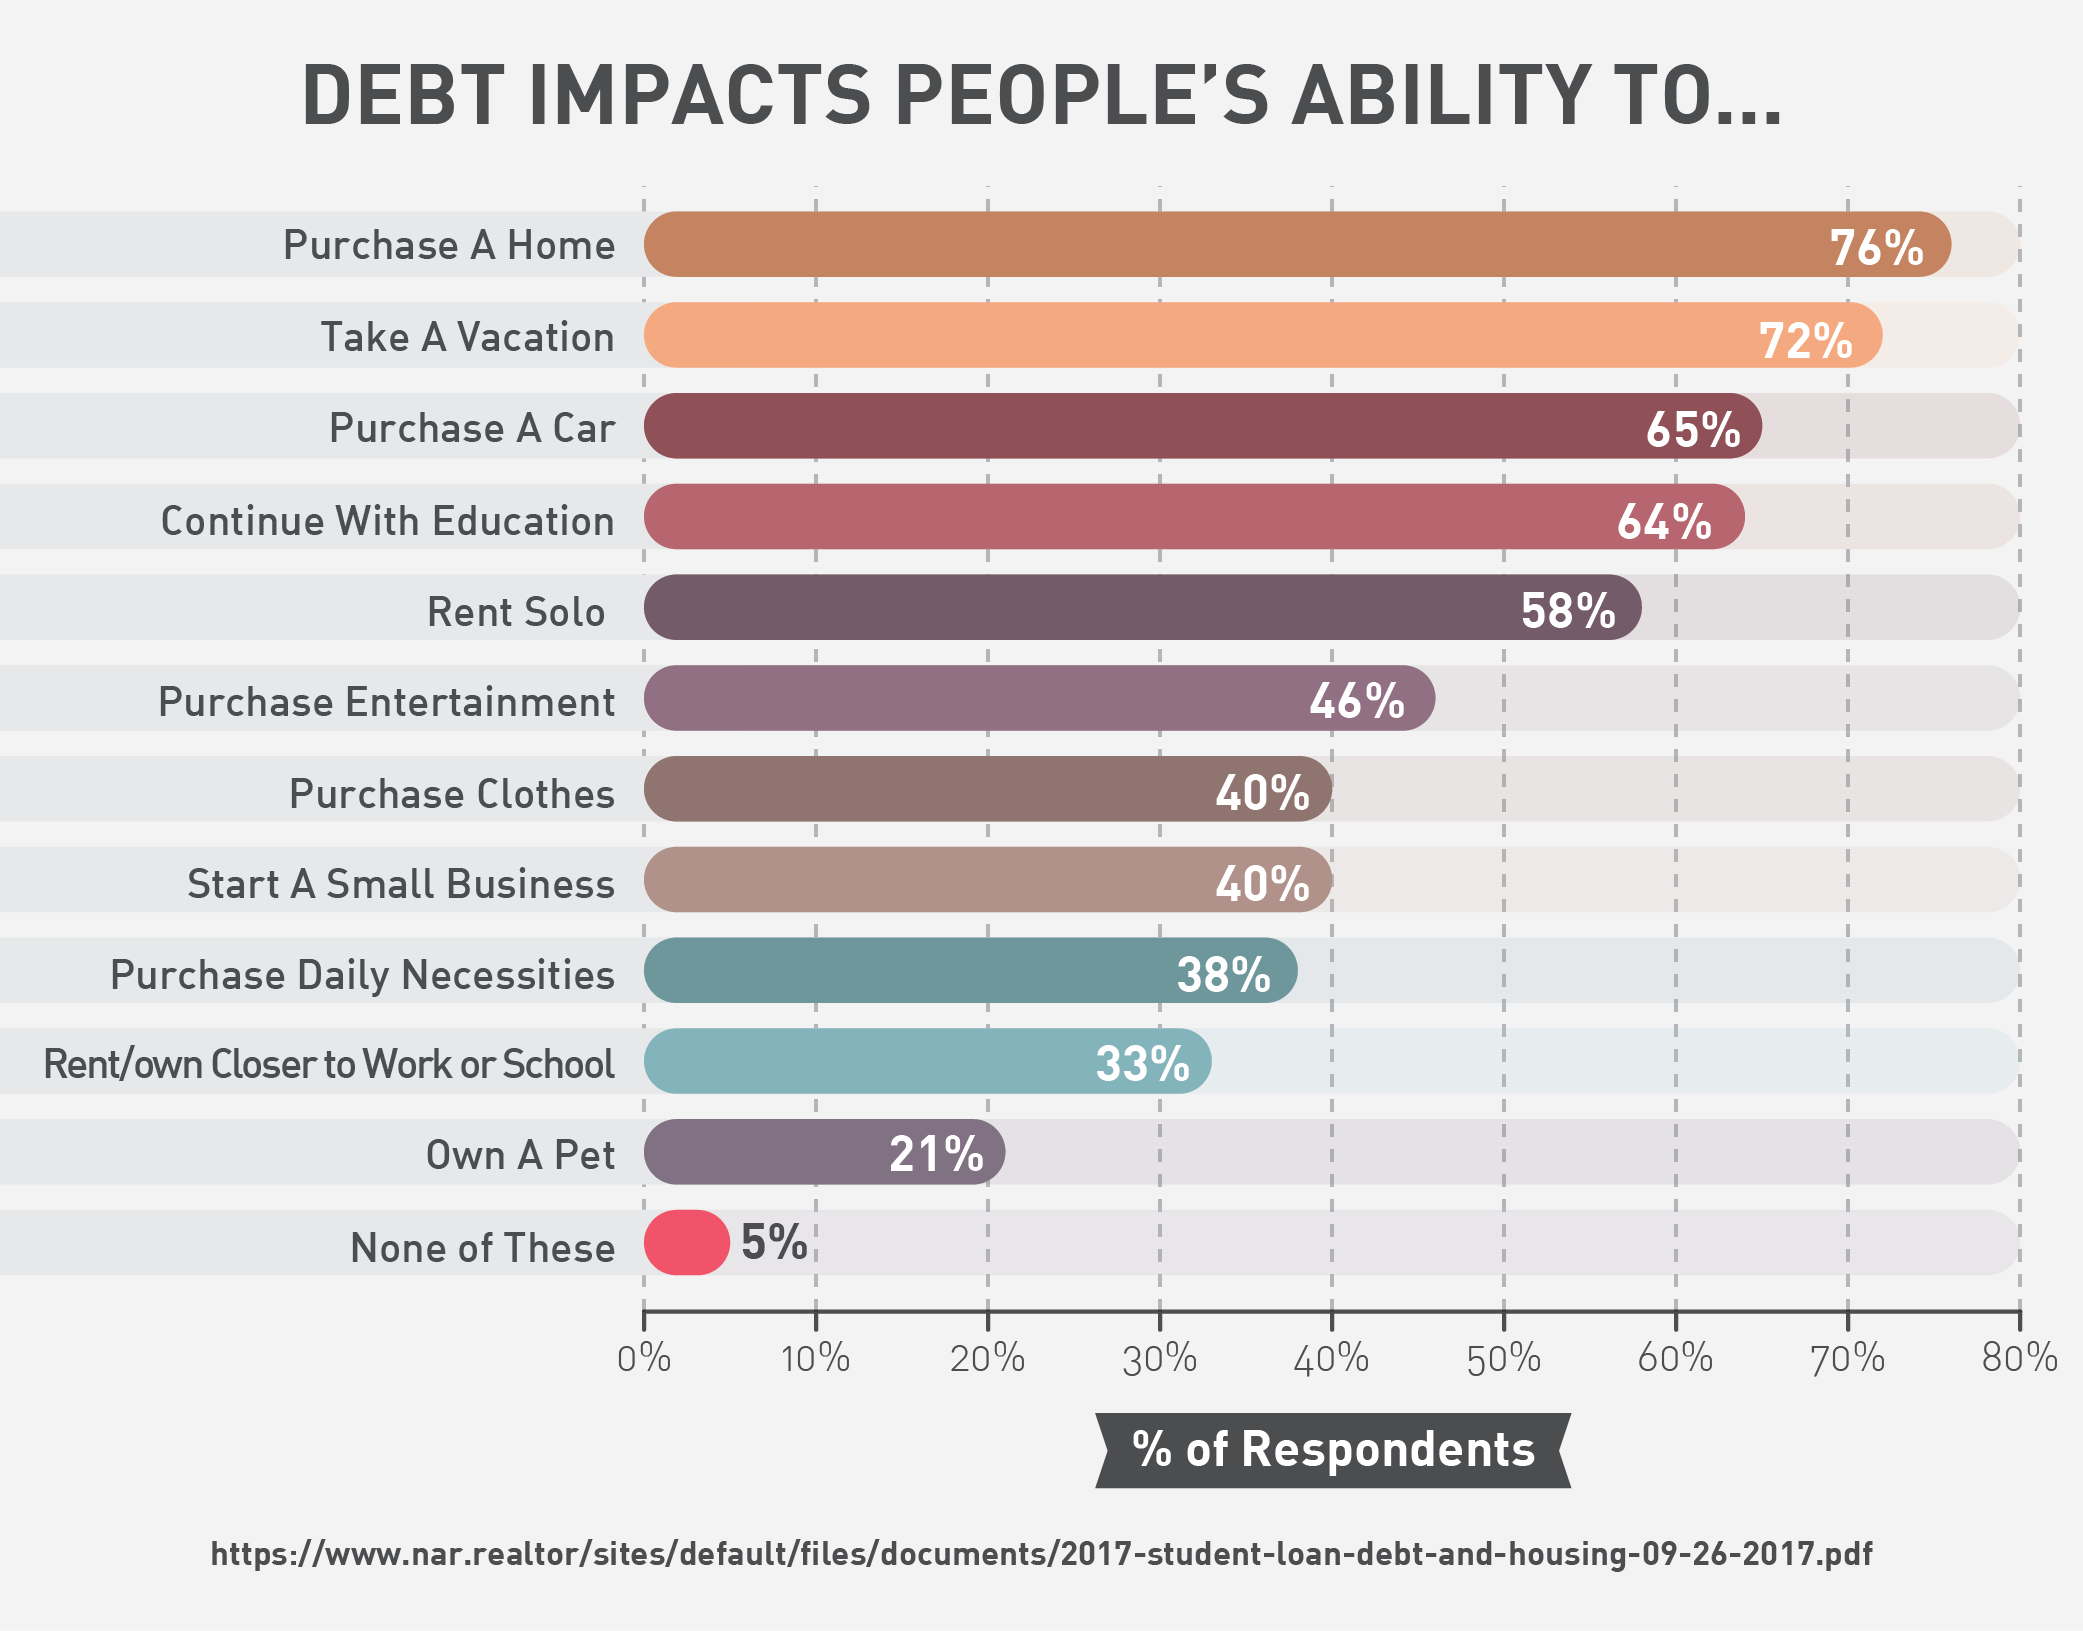 Debt Impacts People's Ability to...